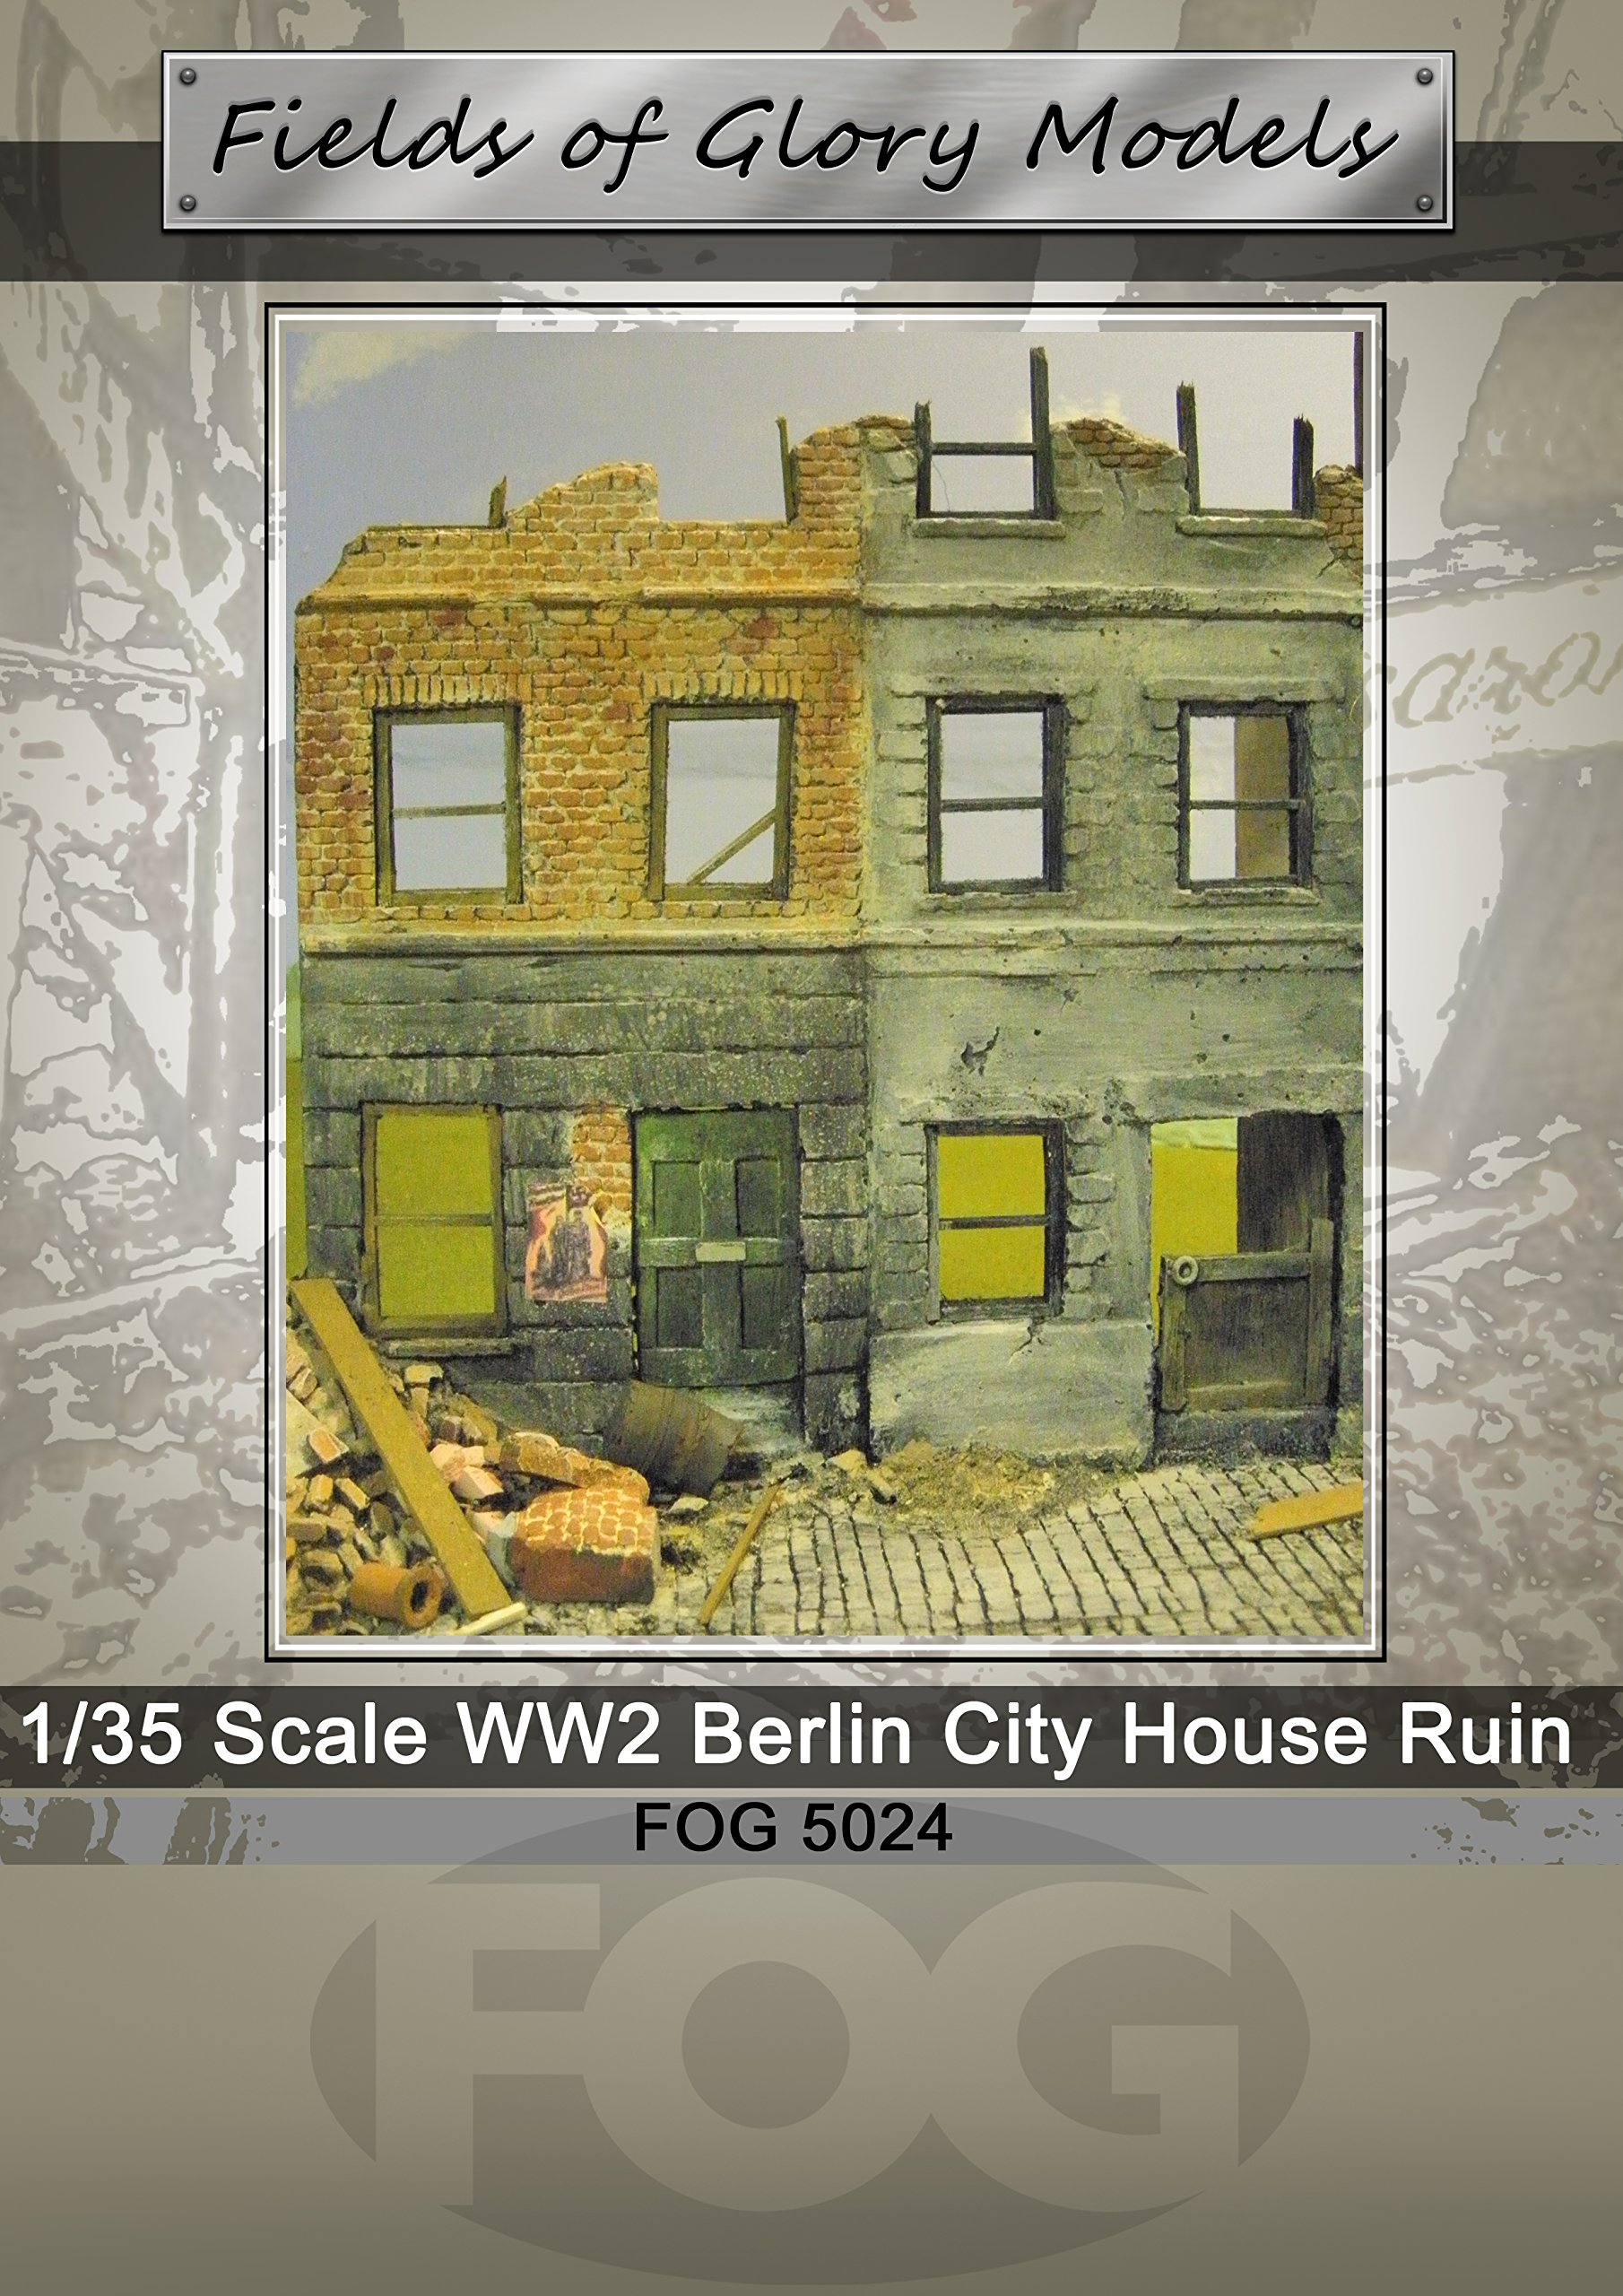 1/35 Scale ~ WW2 Berlin City House Ruin by Fields of Glory